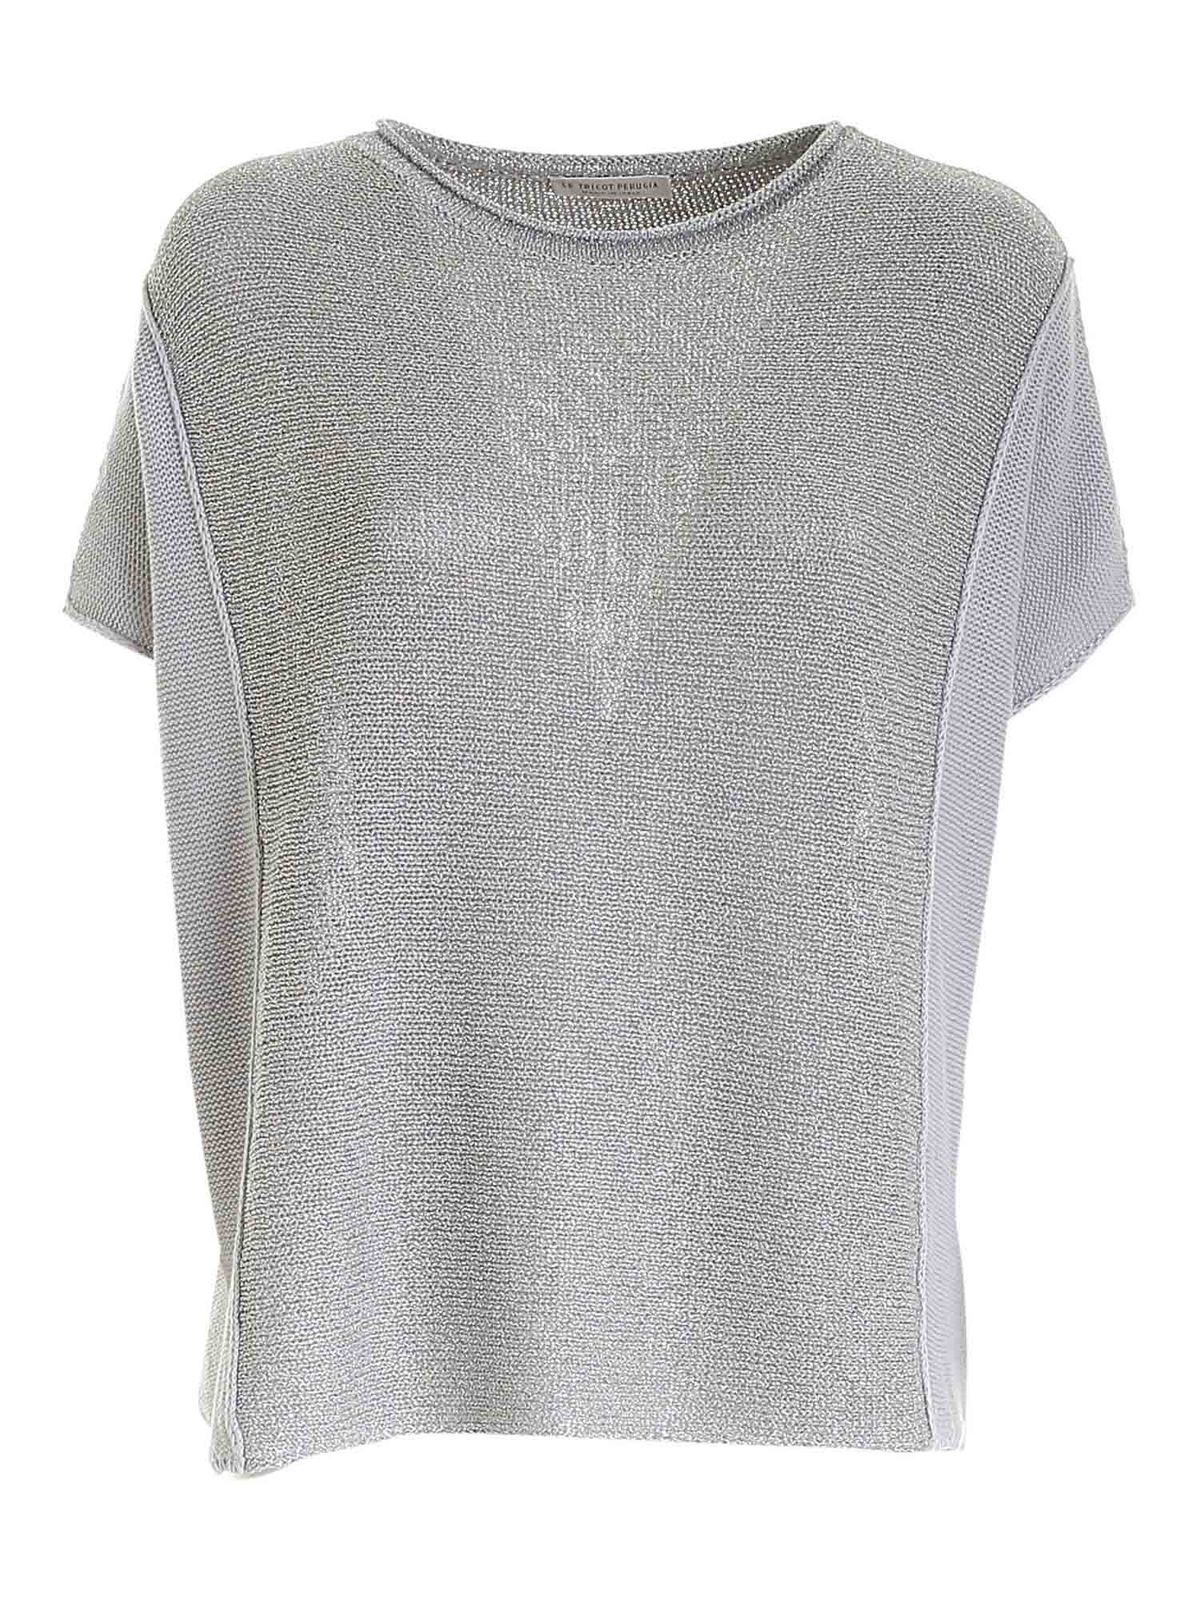 Le Tricot Perugia Blouses LAME DETAIL SWEATER IN GREY